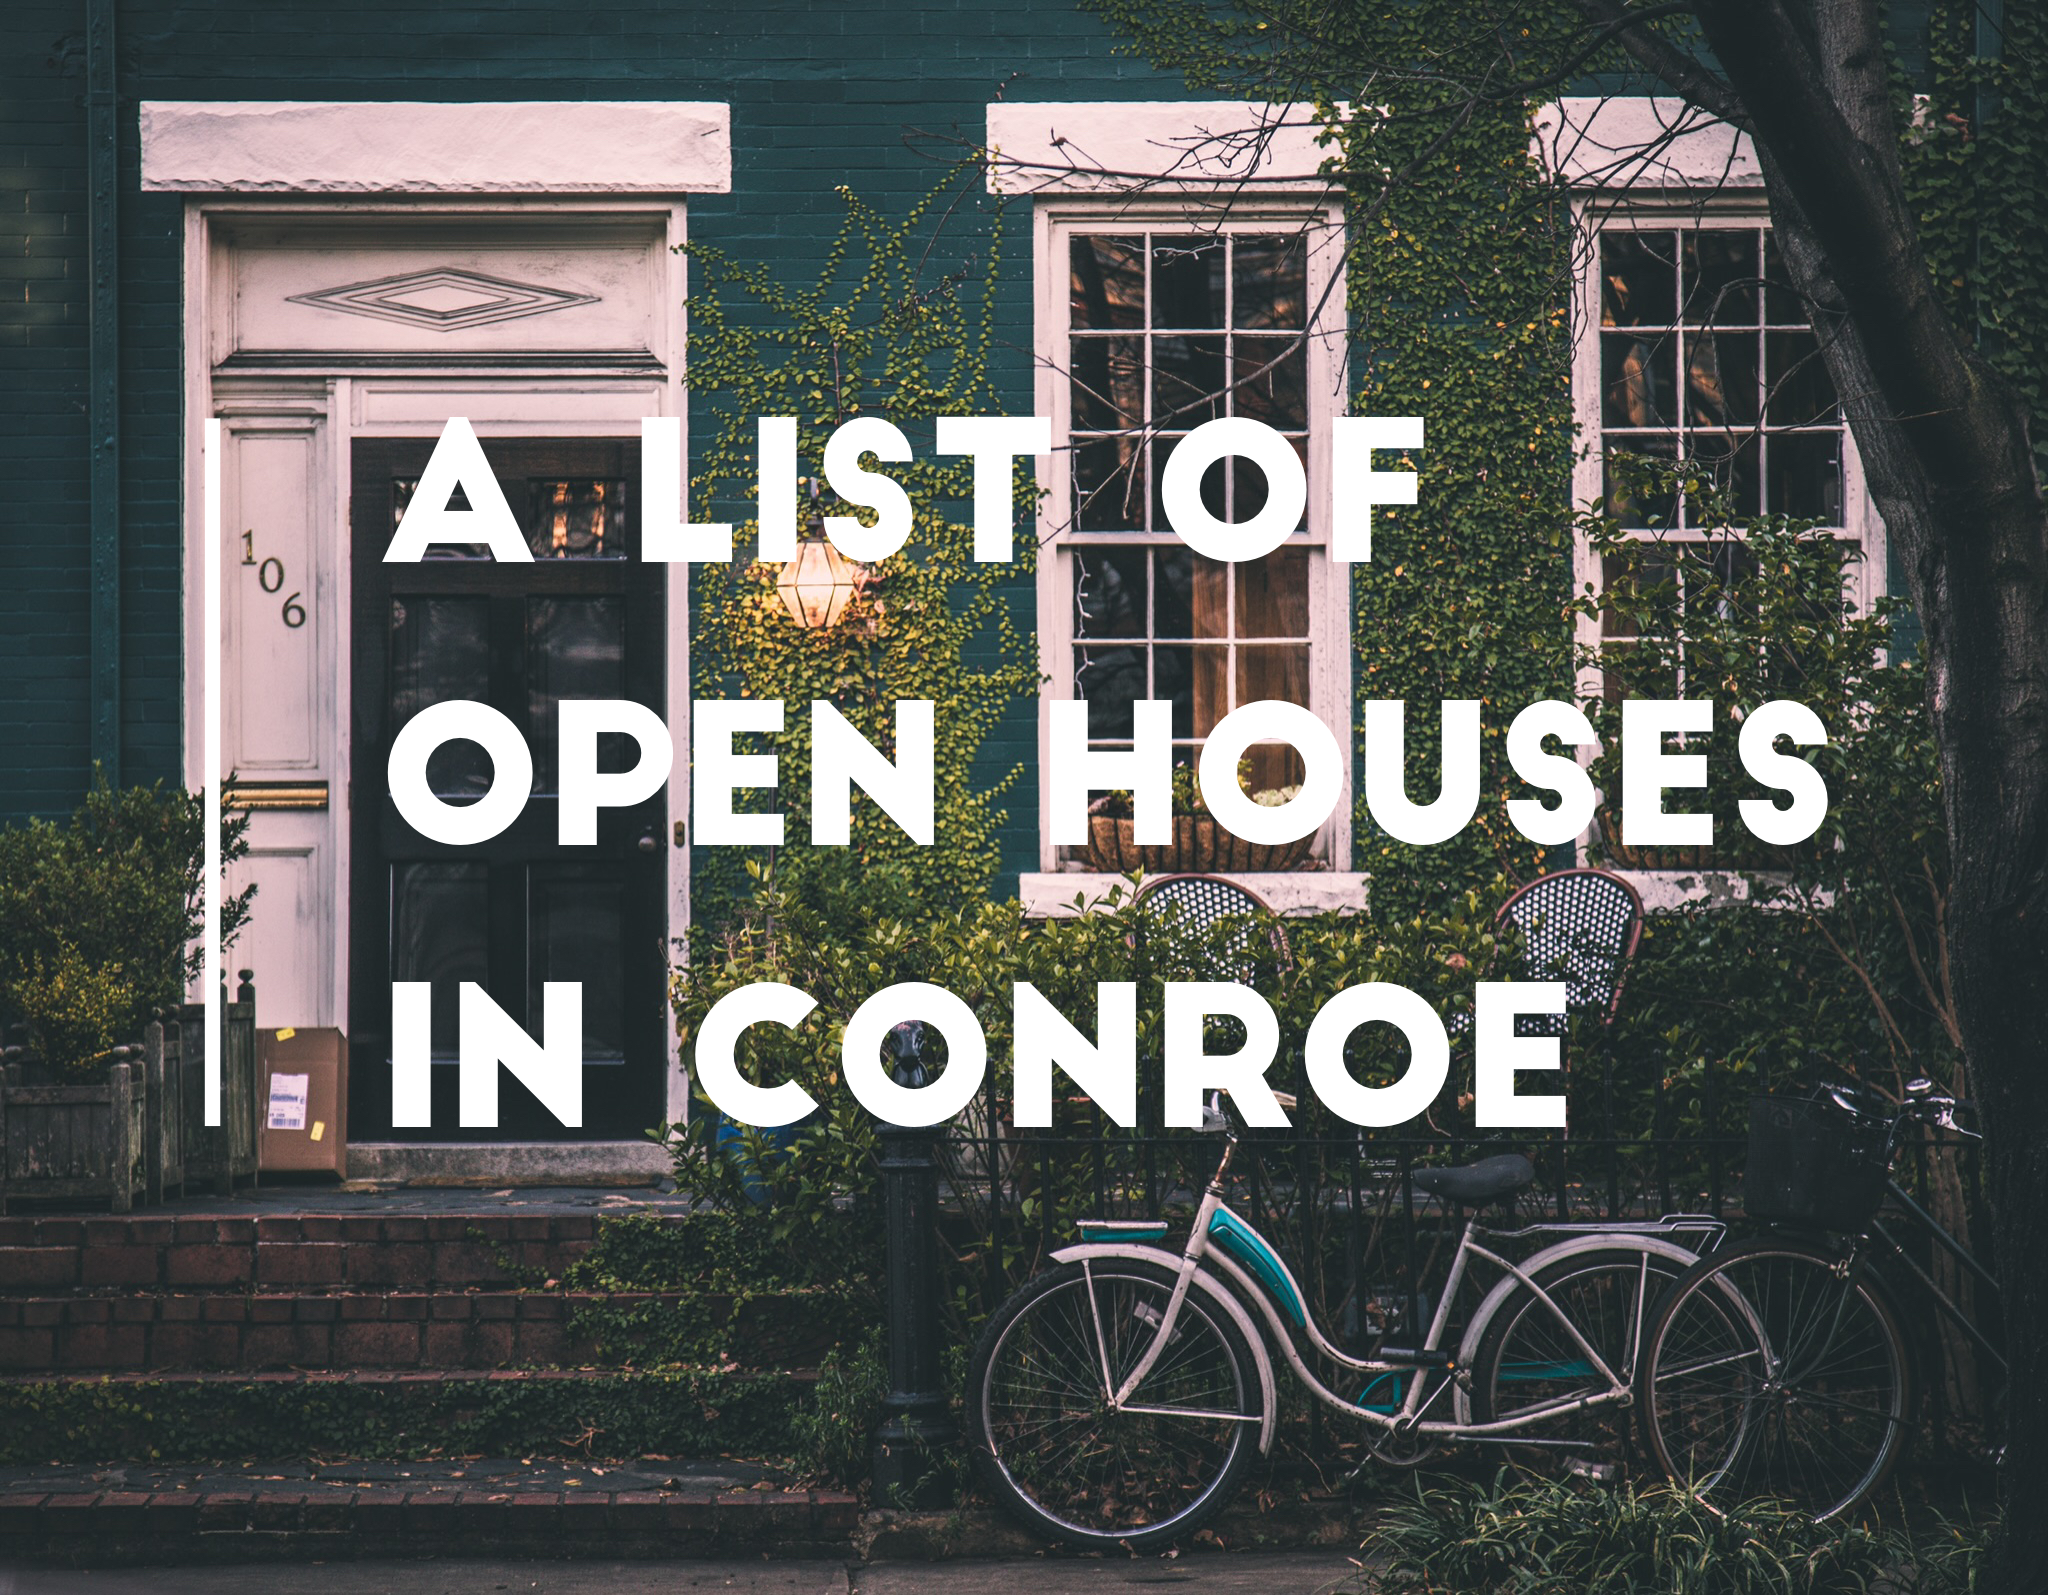 a list of open houses in the conroe tx texas relocating real estate agent realtor brokerage jo & co realty group jordan schilleci